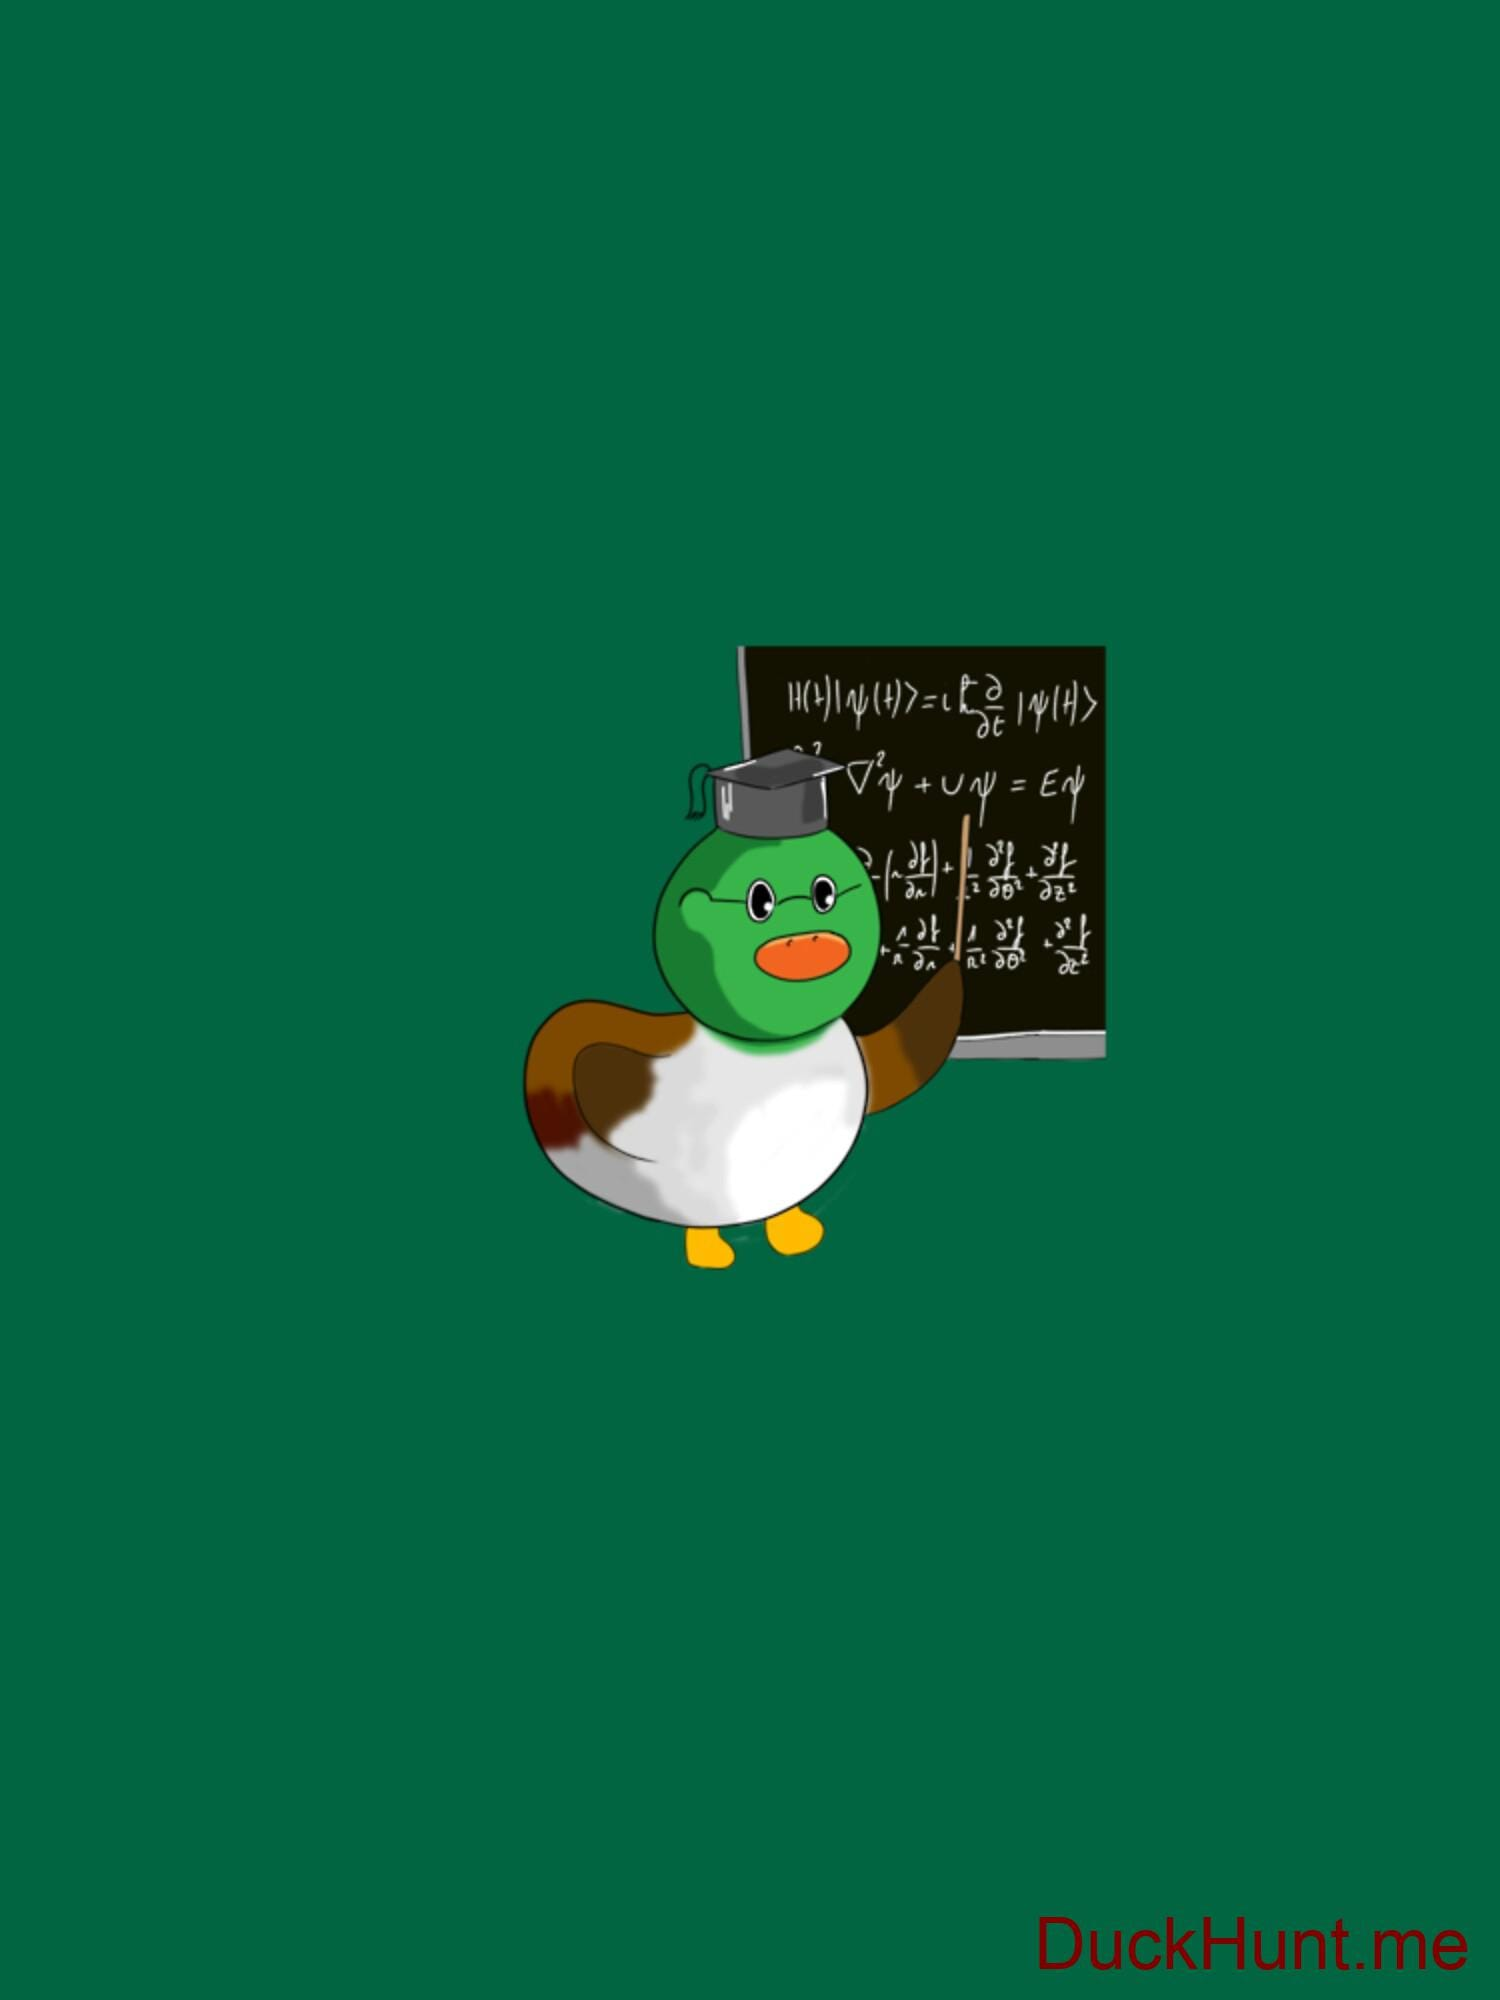 Prof Duck Green Fitted T-Shirt (Front printed) alternative image 1